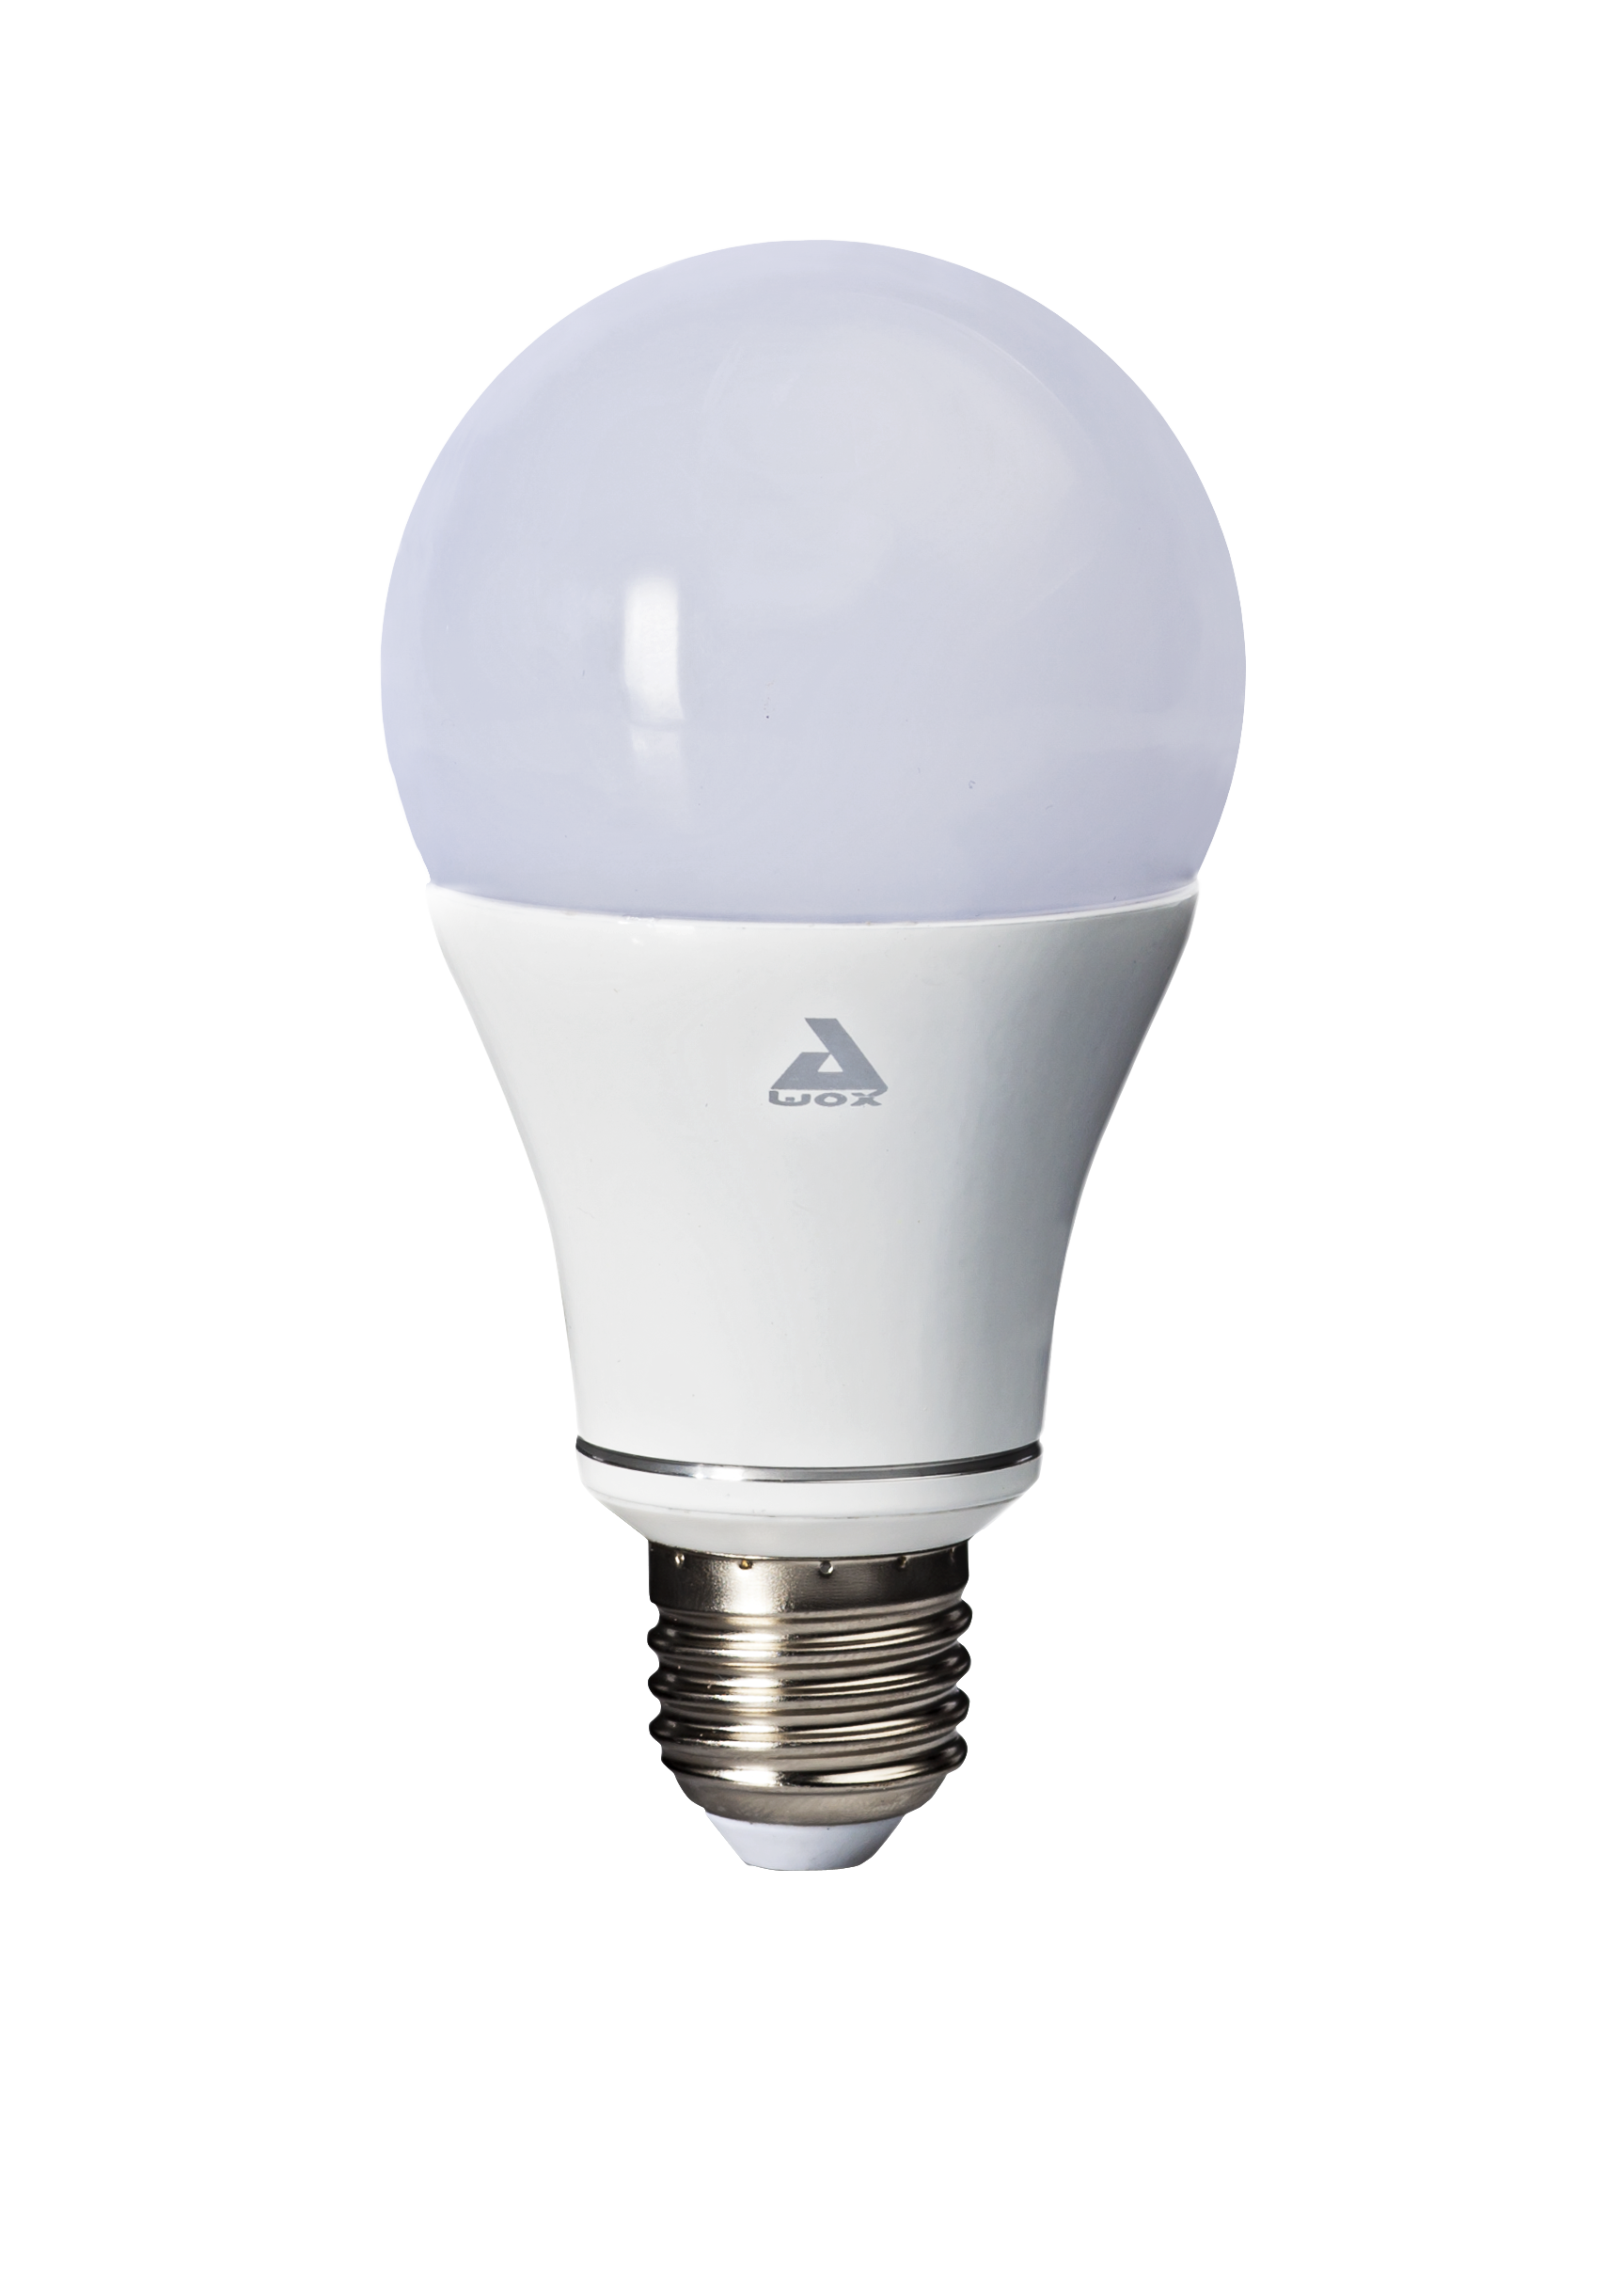 SmartLED - LED connected light bulb - white lighting - AwoX